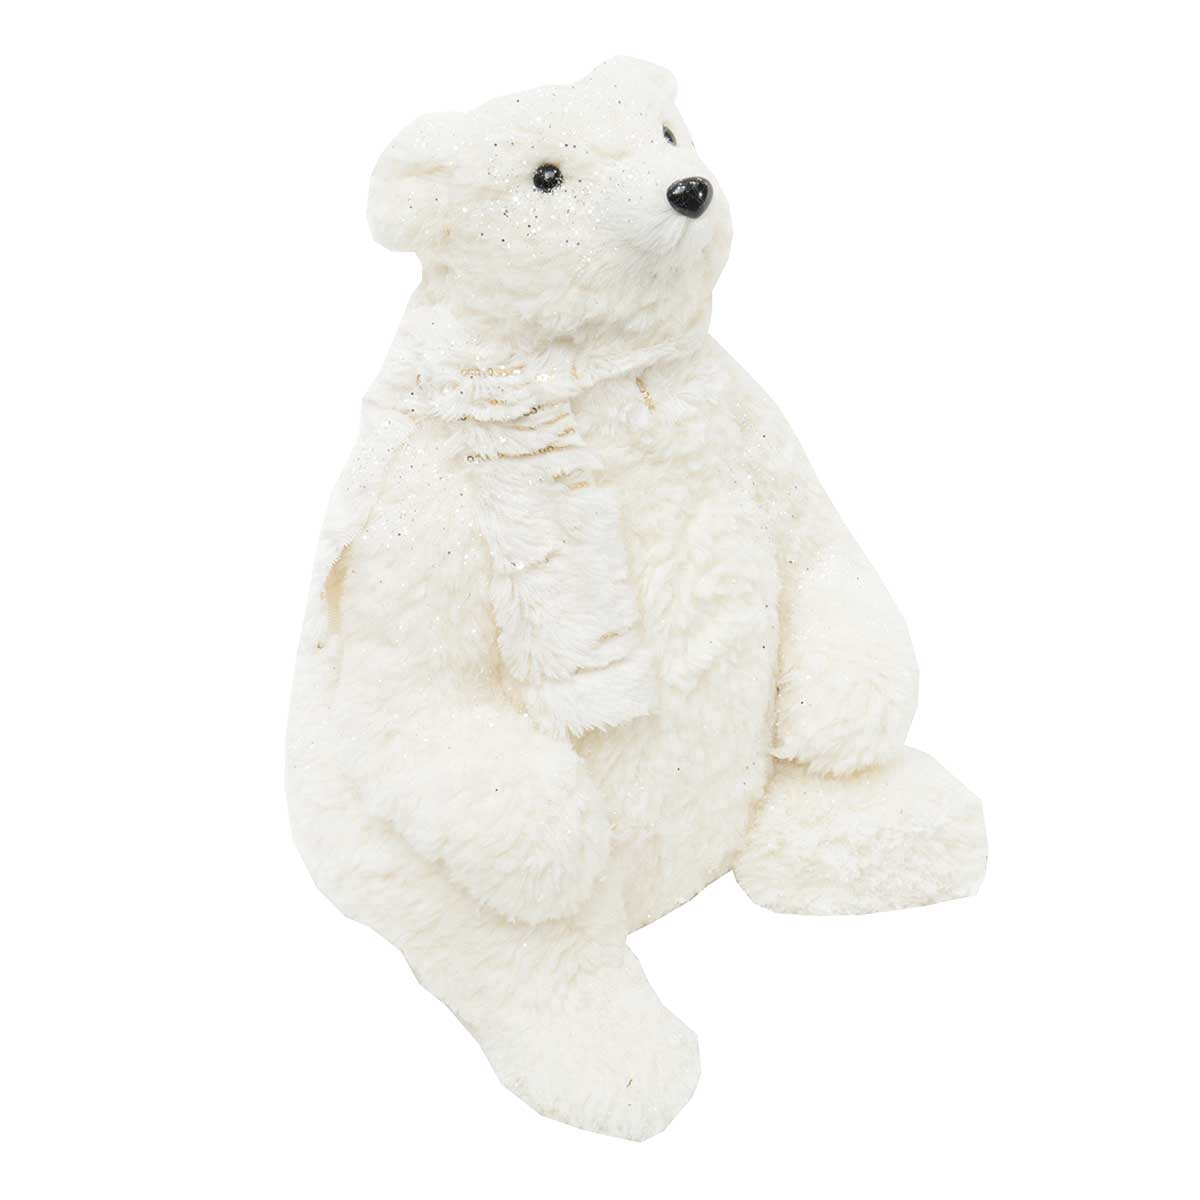 "POLAR BEAR SITTING 13.5"" WITH SCARF"